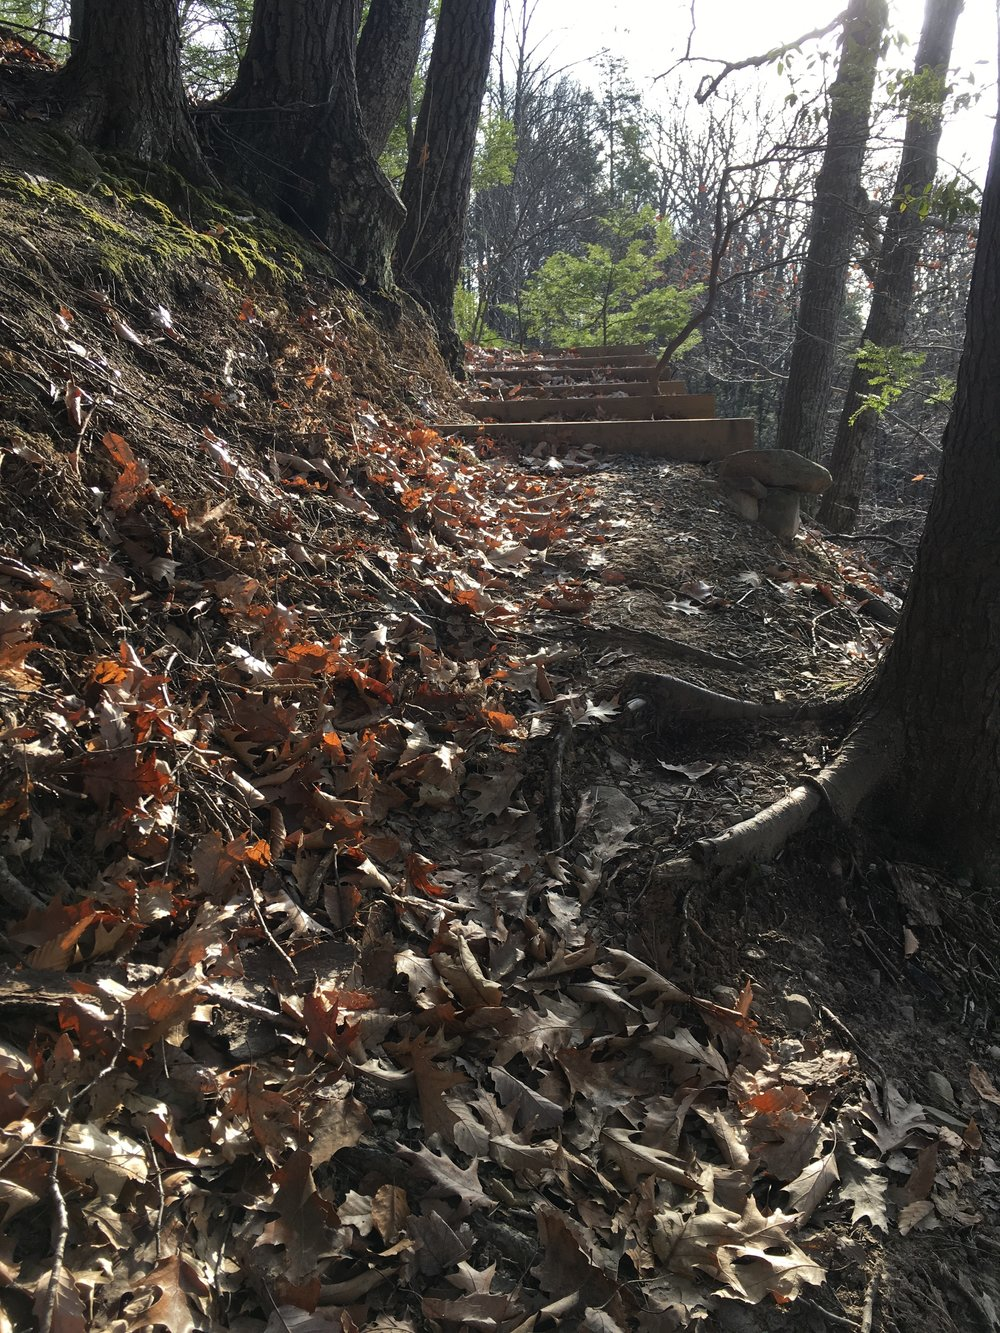 The  CIC  ridge trail is a short hike that offers some mild elevation gain, switchbacks, and in winter, a pleasant view from some picnic tables.